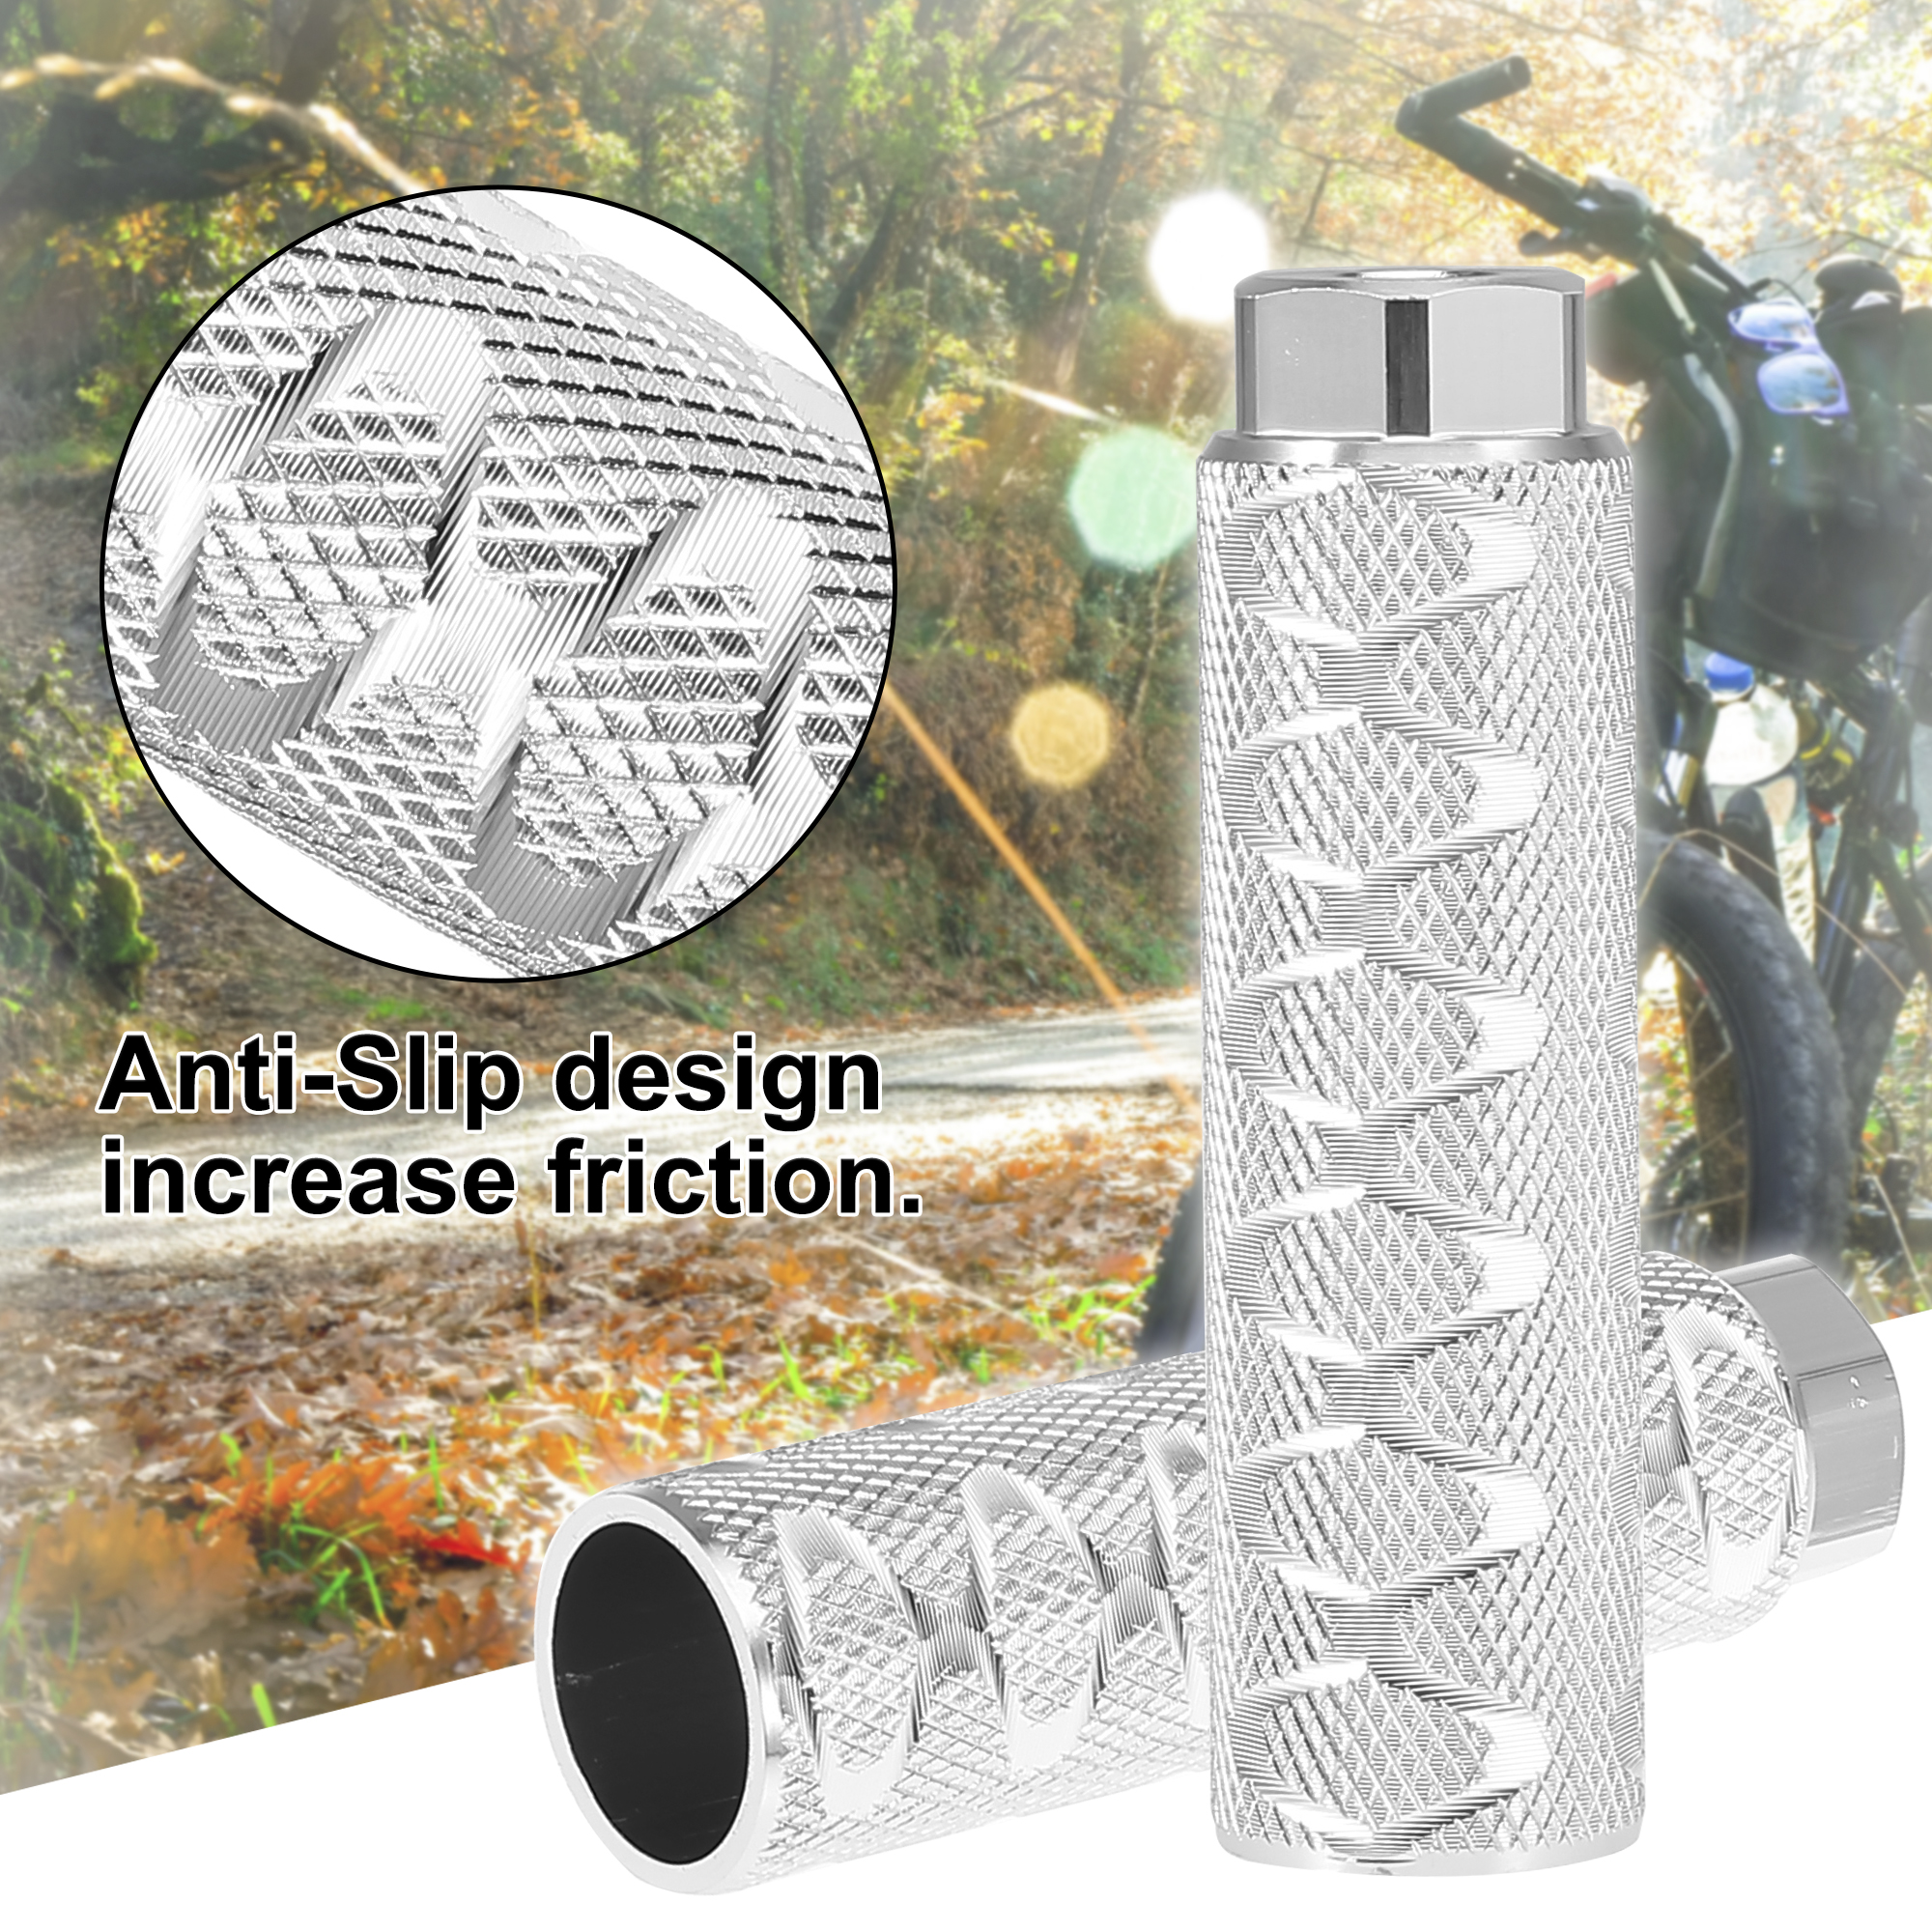 Details about  /Pair 100x28mm Axle Foot Pegs for BMX MTB Bike Fit 3//8 Inch Axles Silver Tone